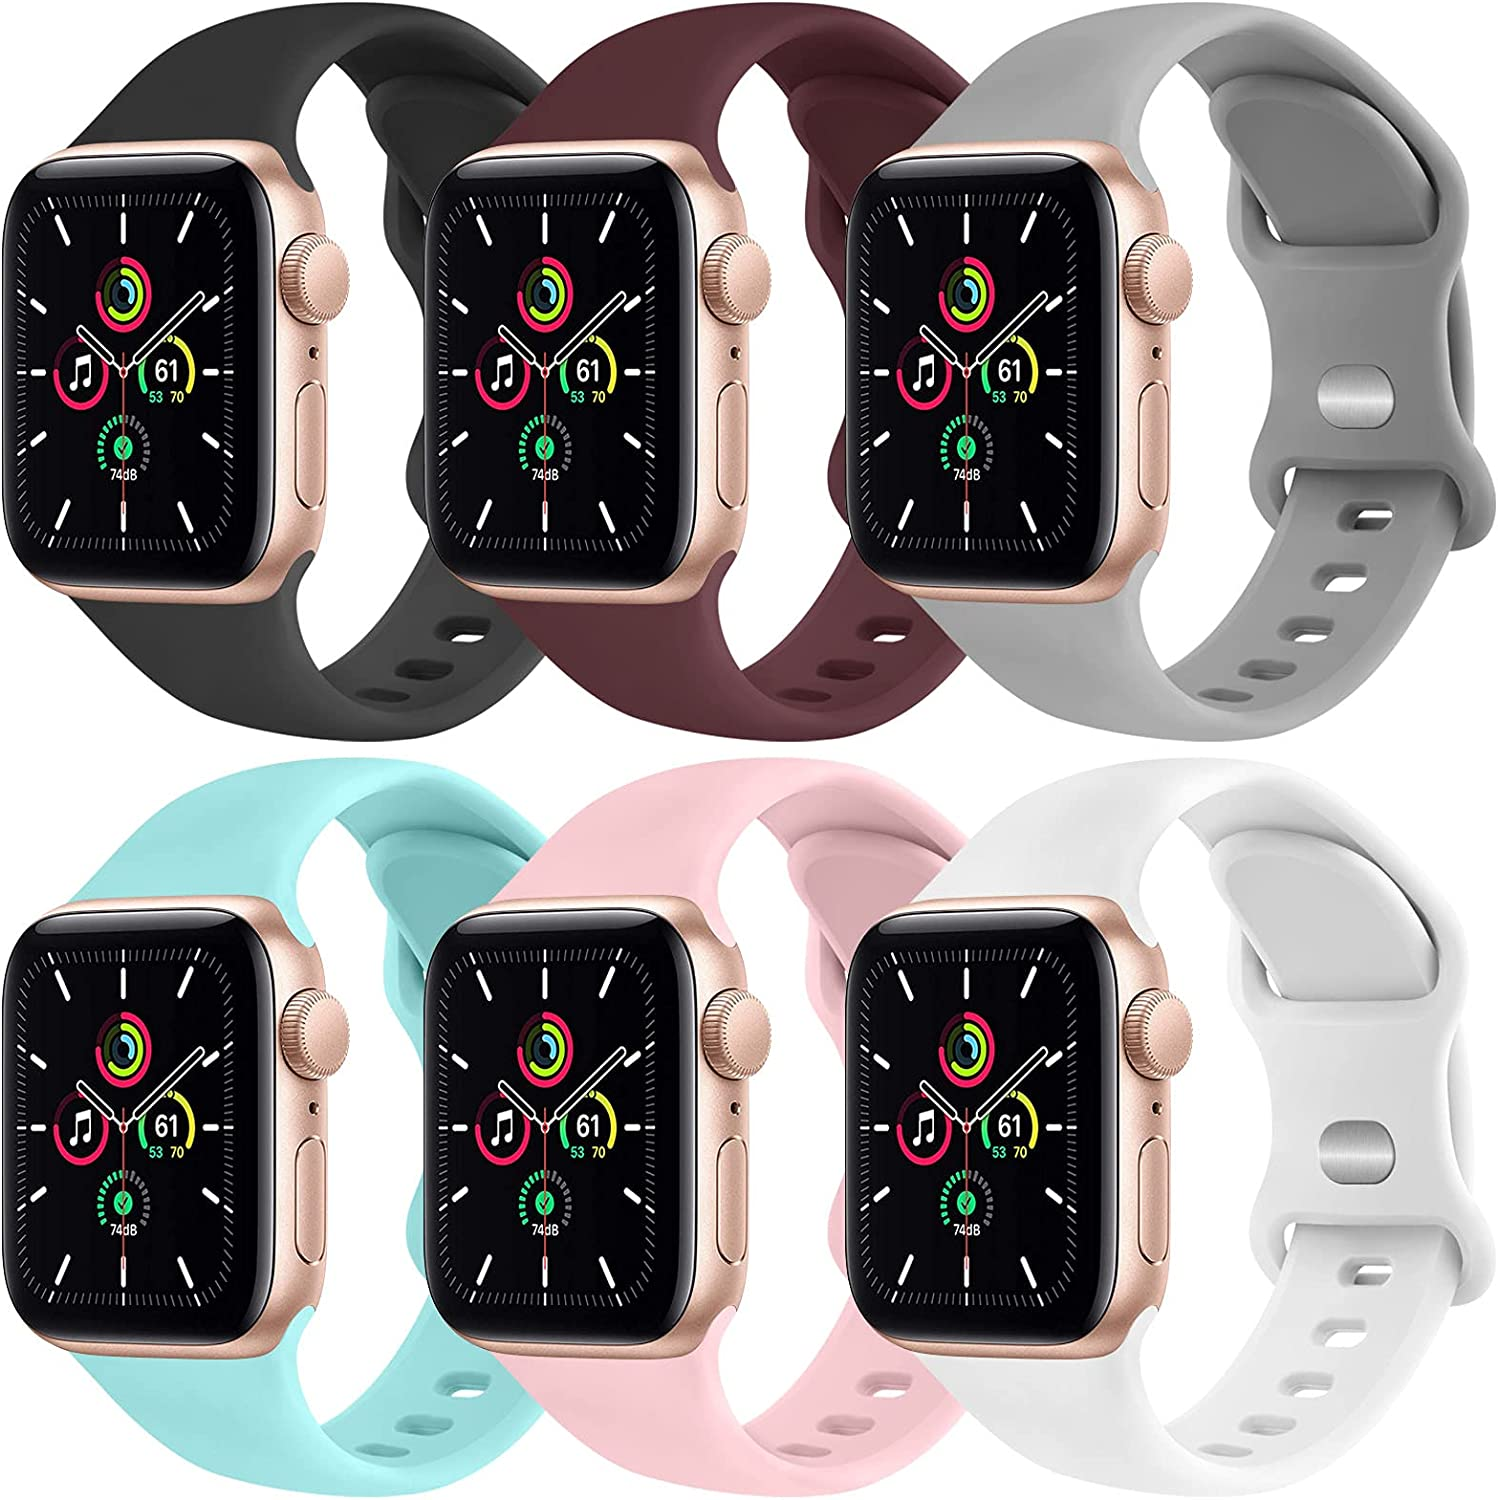 [6 Pack] Yisica Silicone Bands Compatible with Apple Watch Band 40mm 38mm 44mm 42mm for Women Men, Sport Wristbands for iWatch Series SE/6/5/4/3/2/1